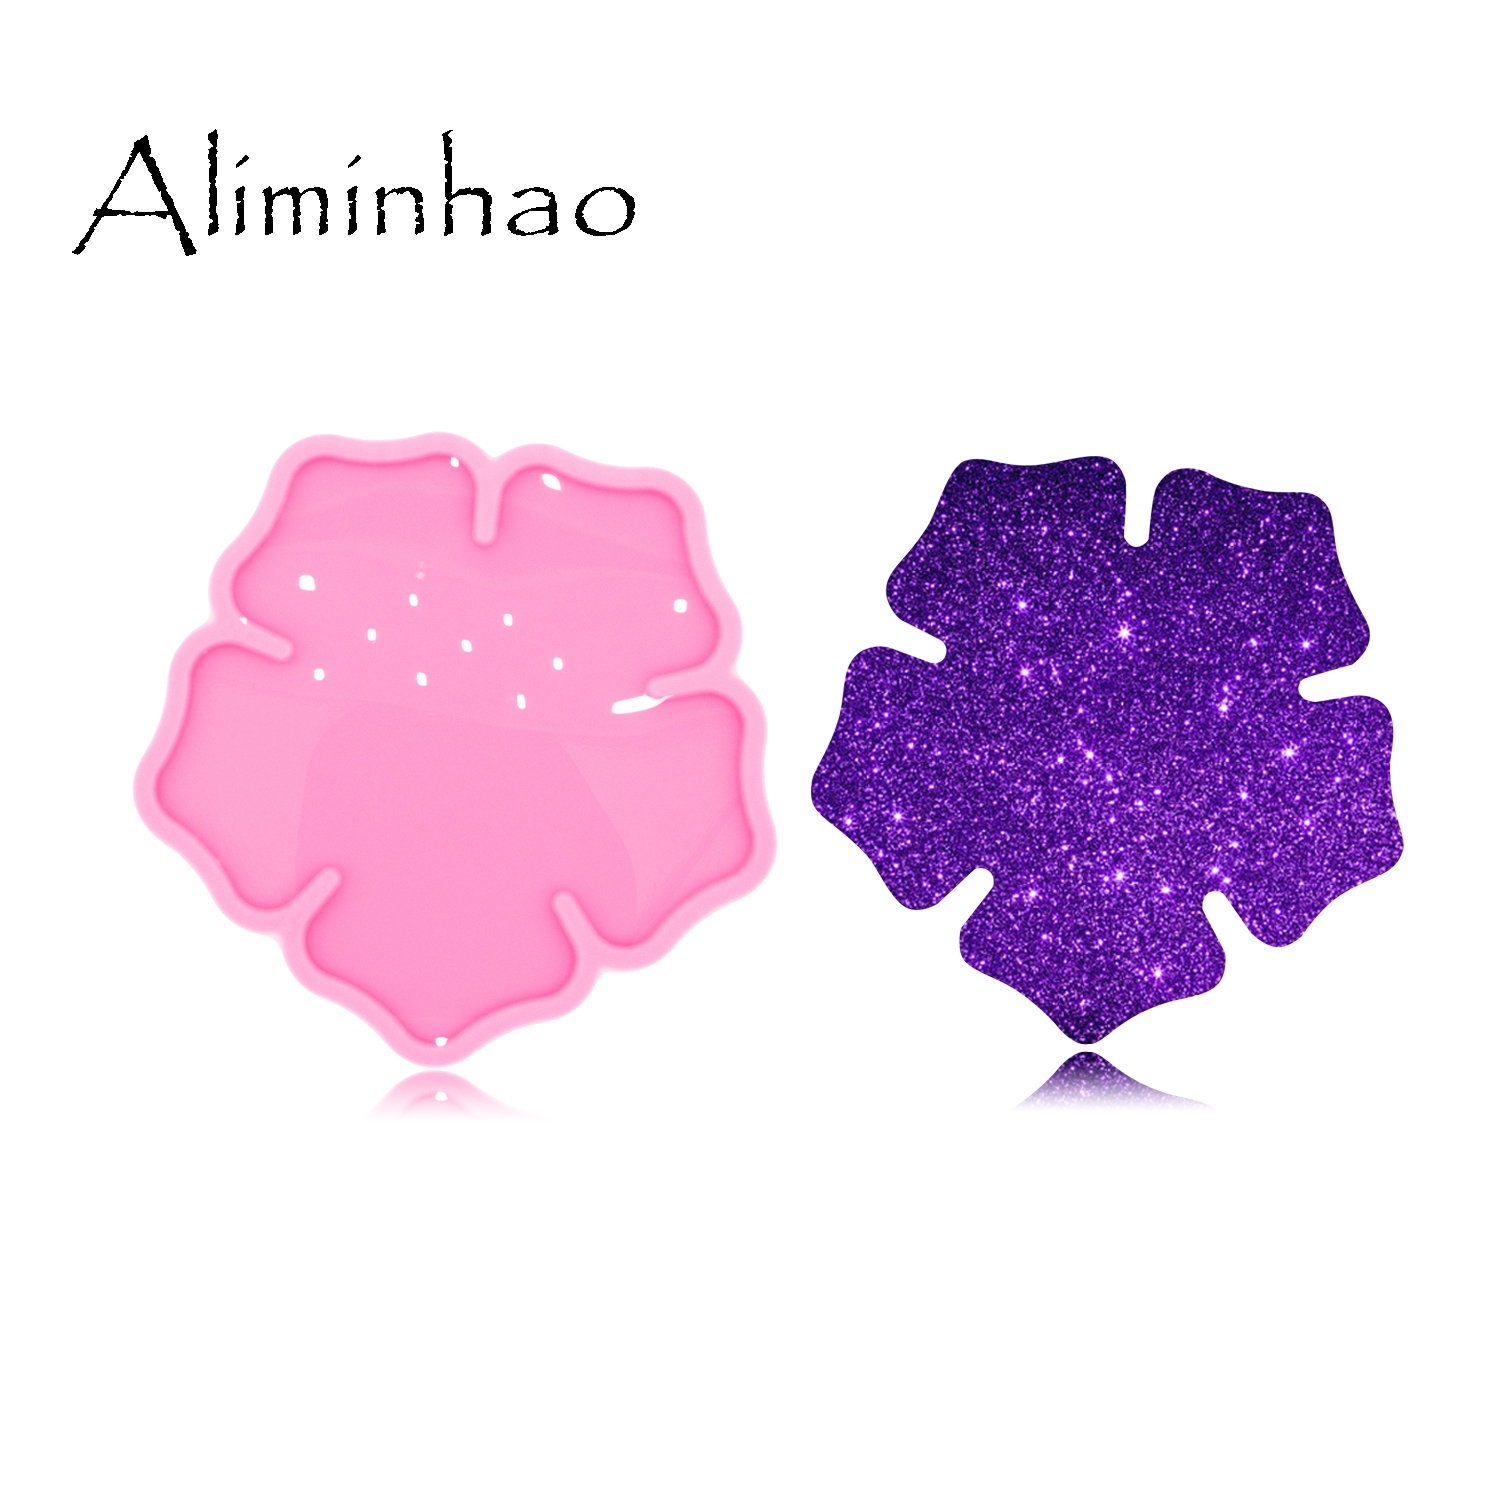 DY0488 Shiny High Quality Flowers Shape Silicone Epoxy Resin Molds DIY Geode Coaster Agate Mould